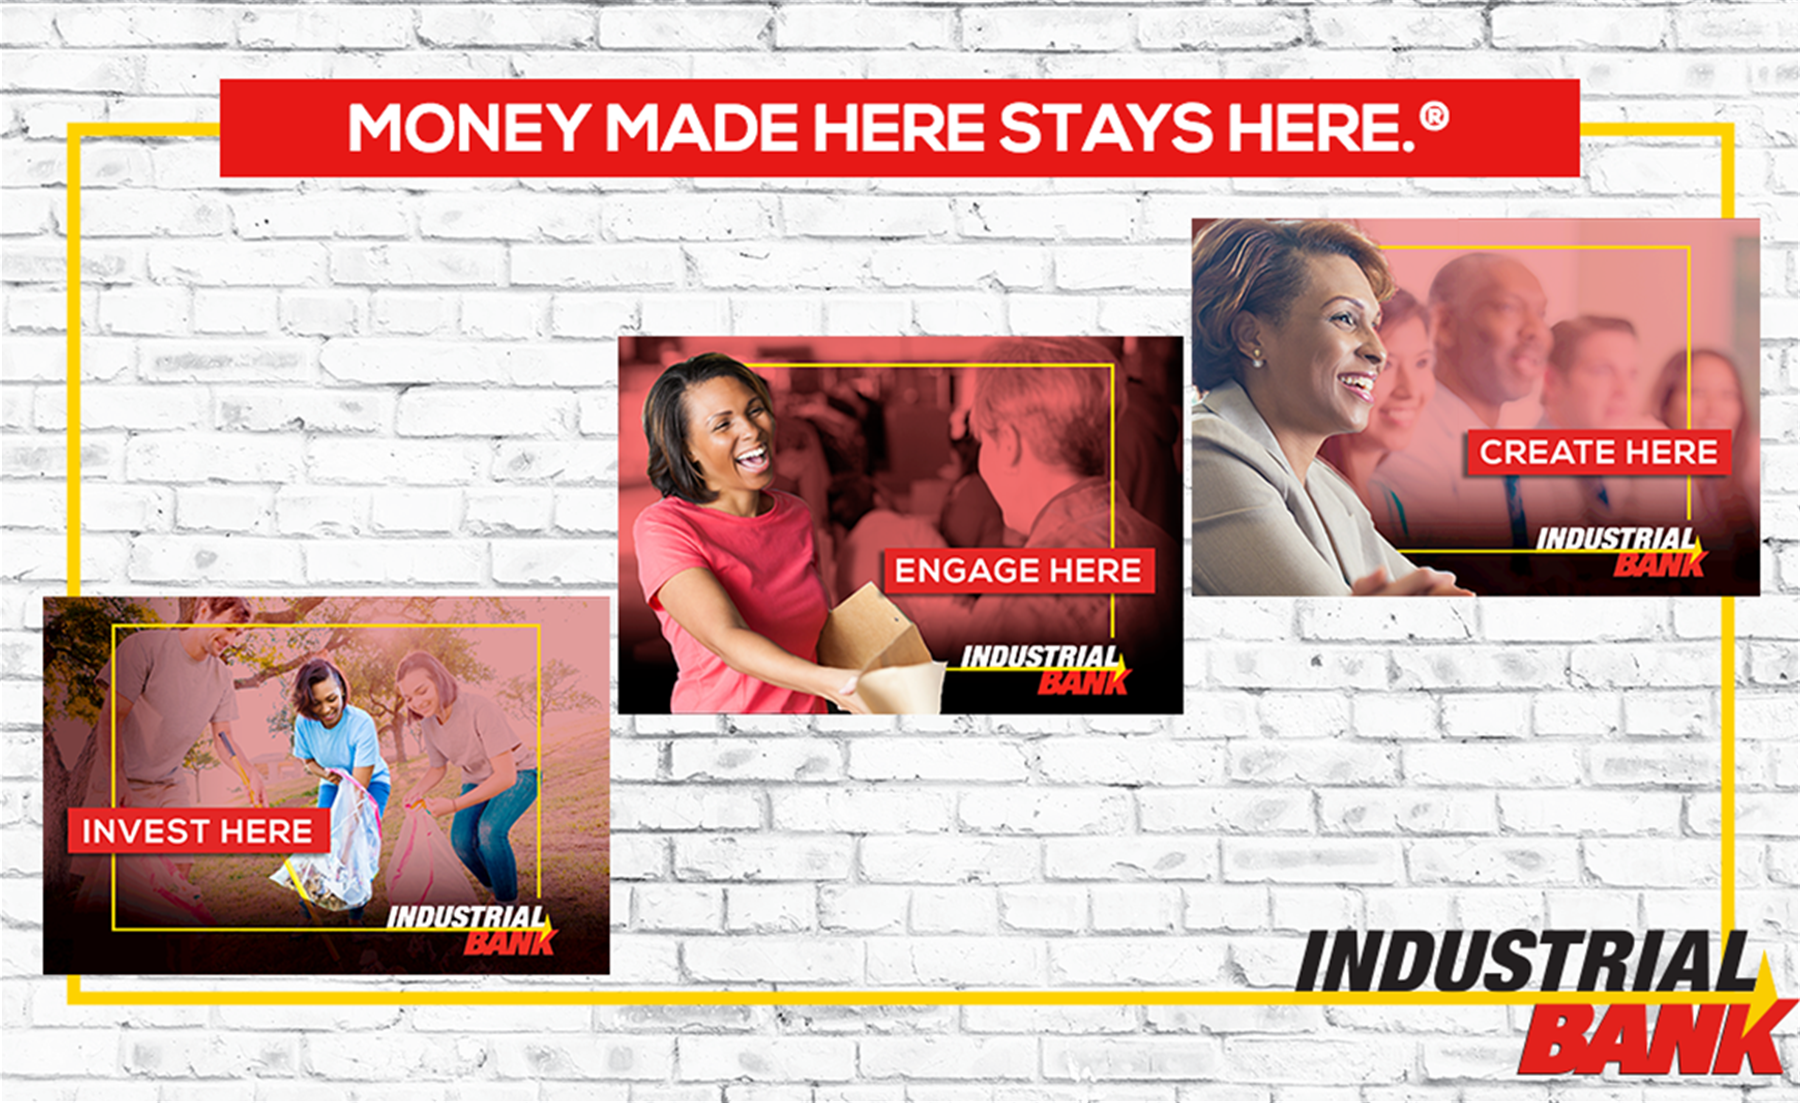 Money Made Here Stays Here Campaign - invest here, engage here and create here.